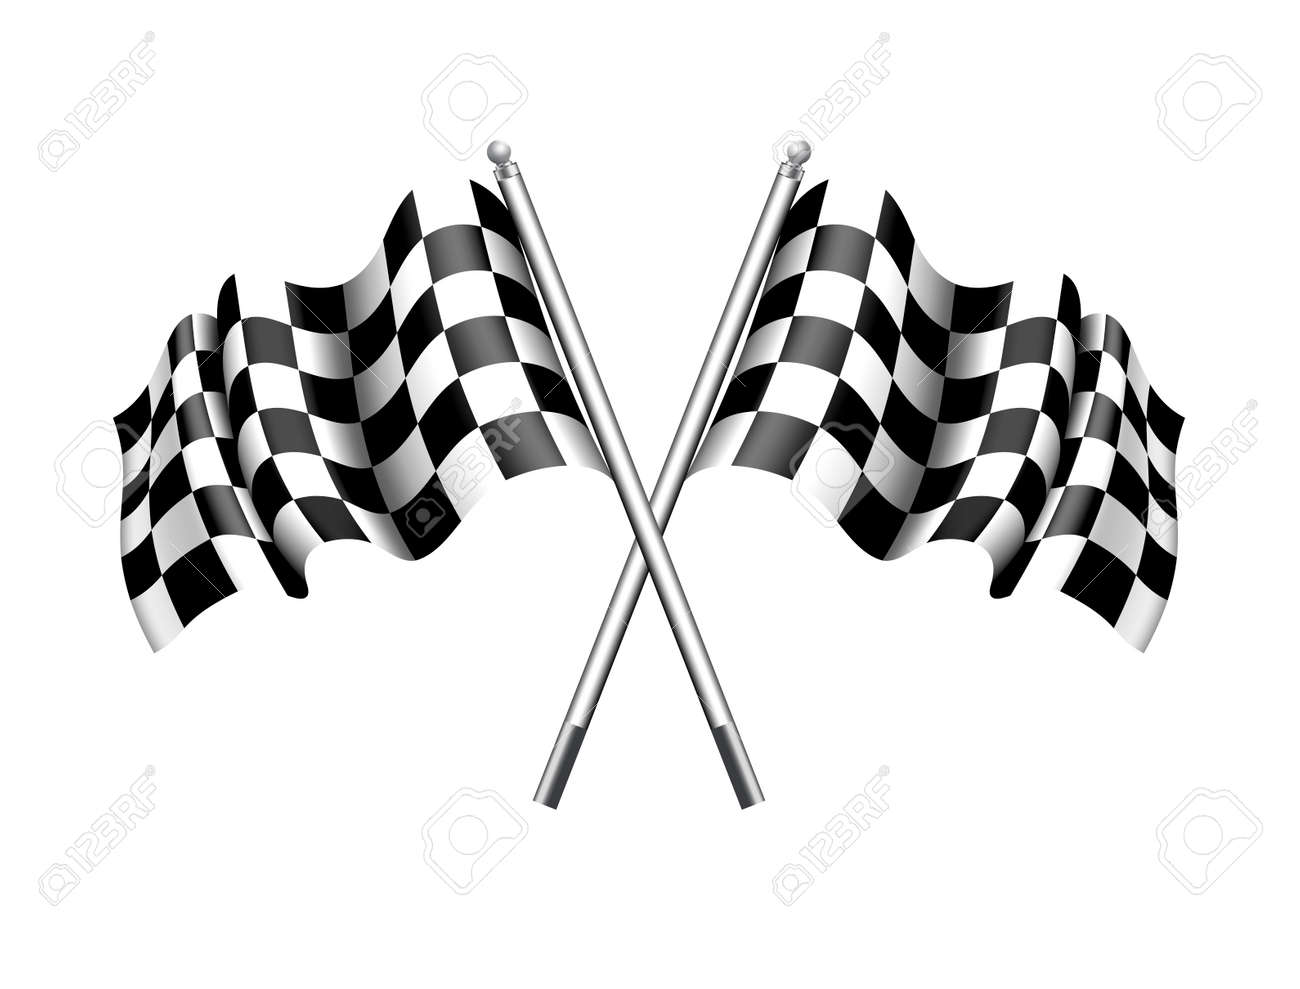 Free Chequered Flag, Download Free Clip Art, Free Clip Art on Clipart  Library